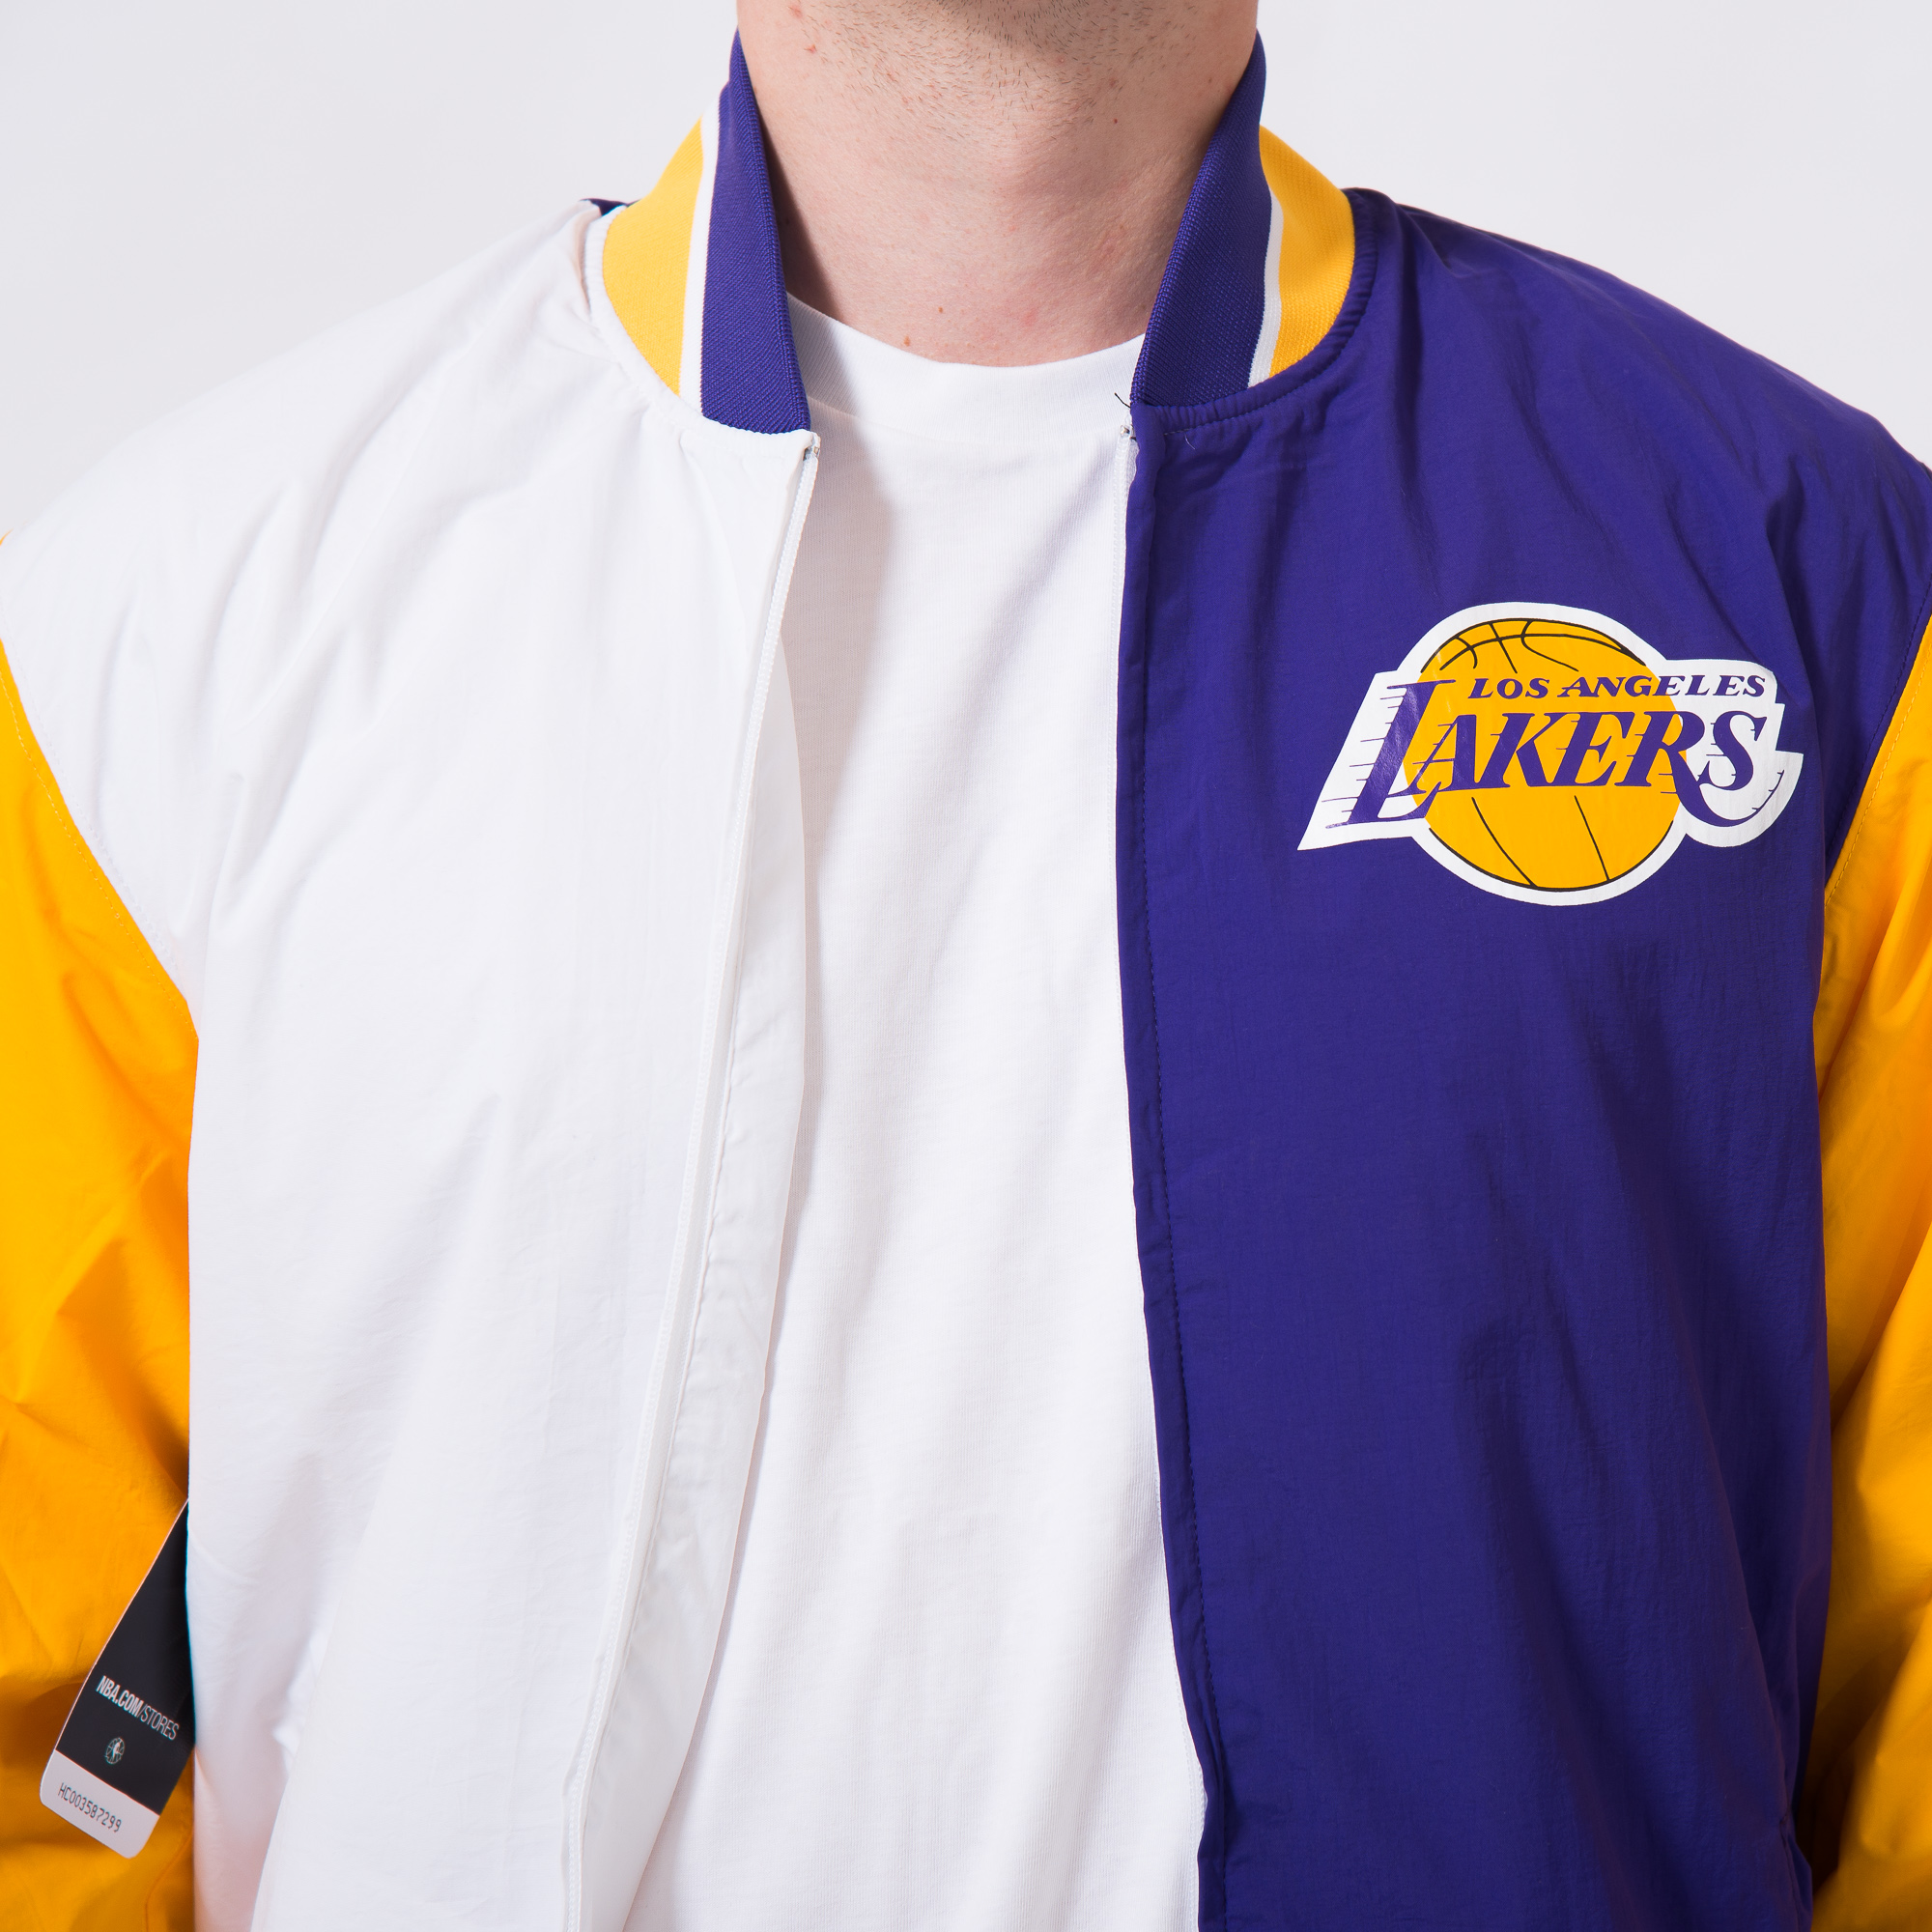 outlet store 48bc5 cf1c8 Mitchell   Ness NBA Los Angeles Lakers Team History Warm Up Jacket 2.0